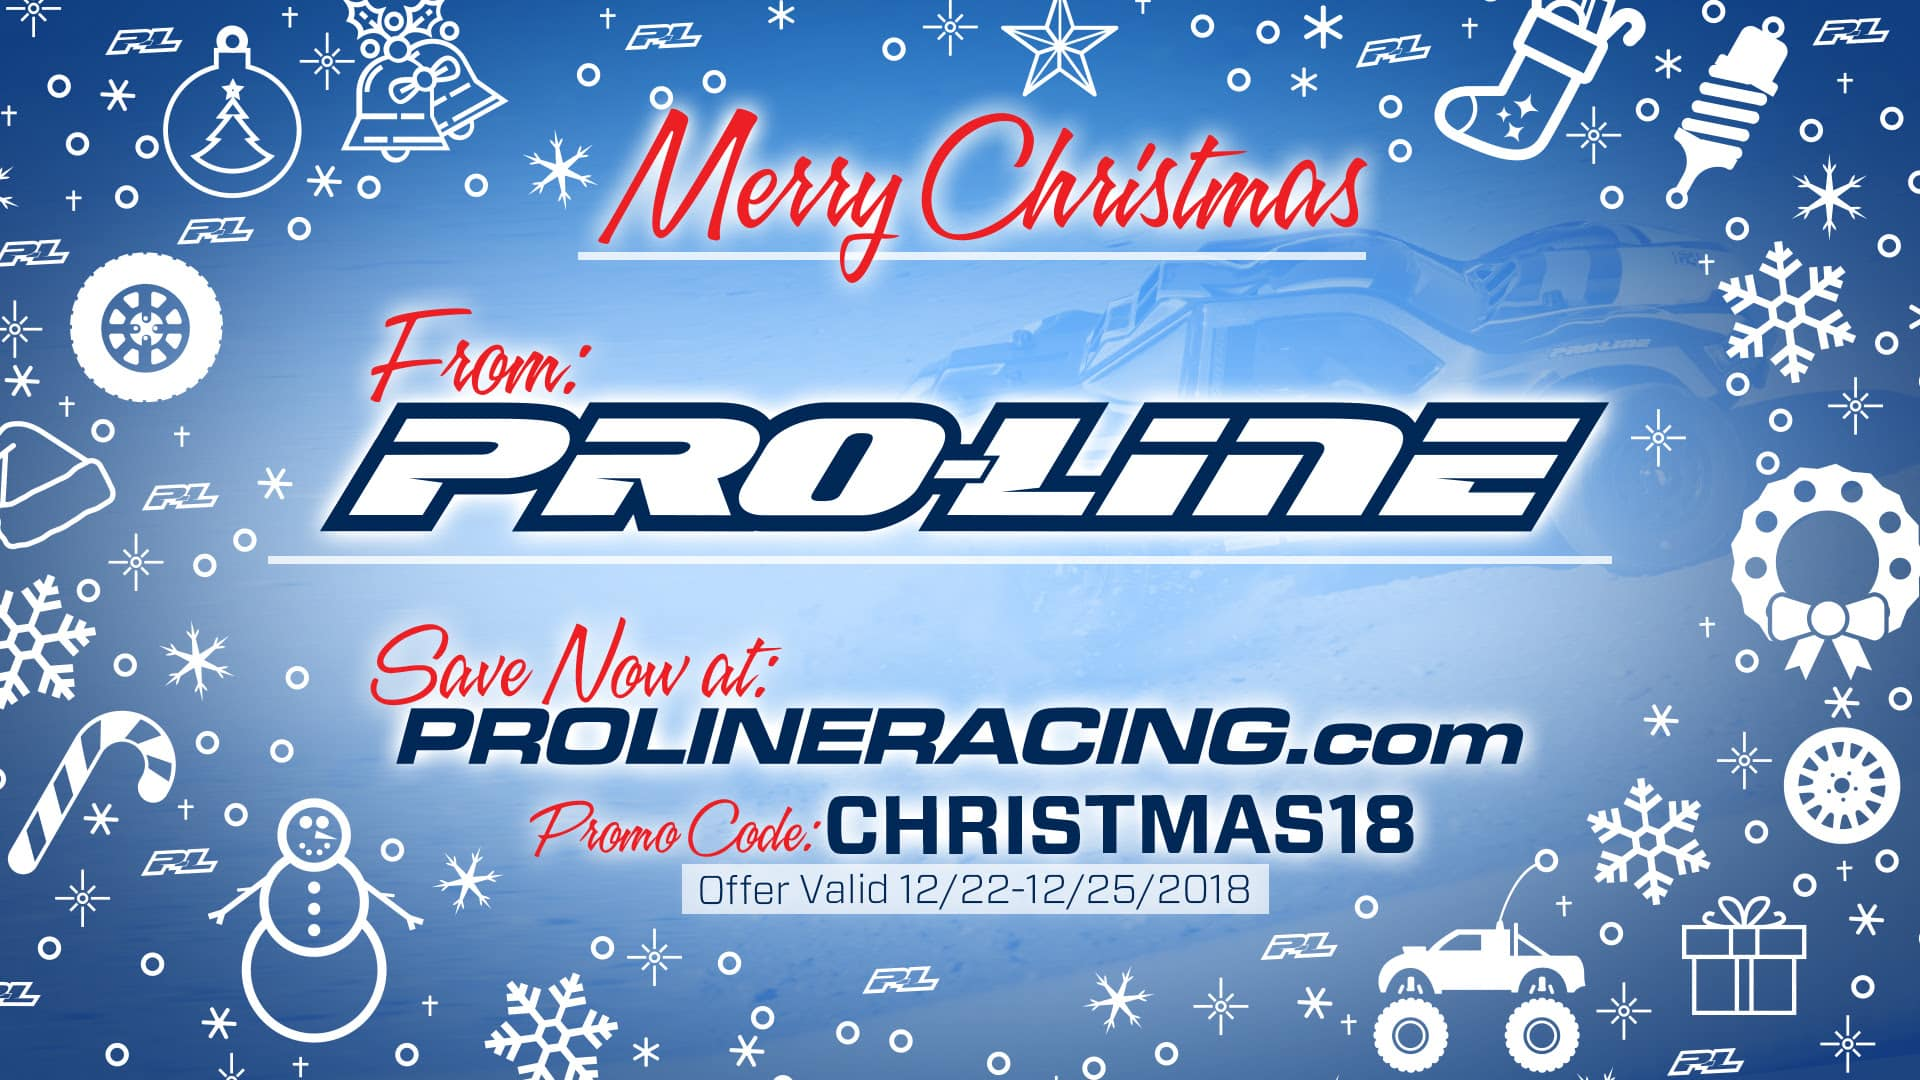 Score Last-minute Holiday Shopping Savings with Pro-Line